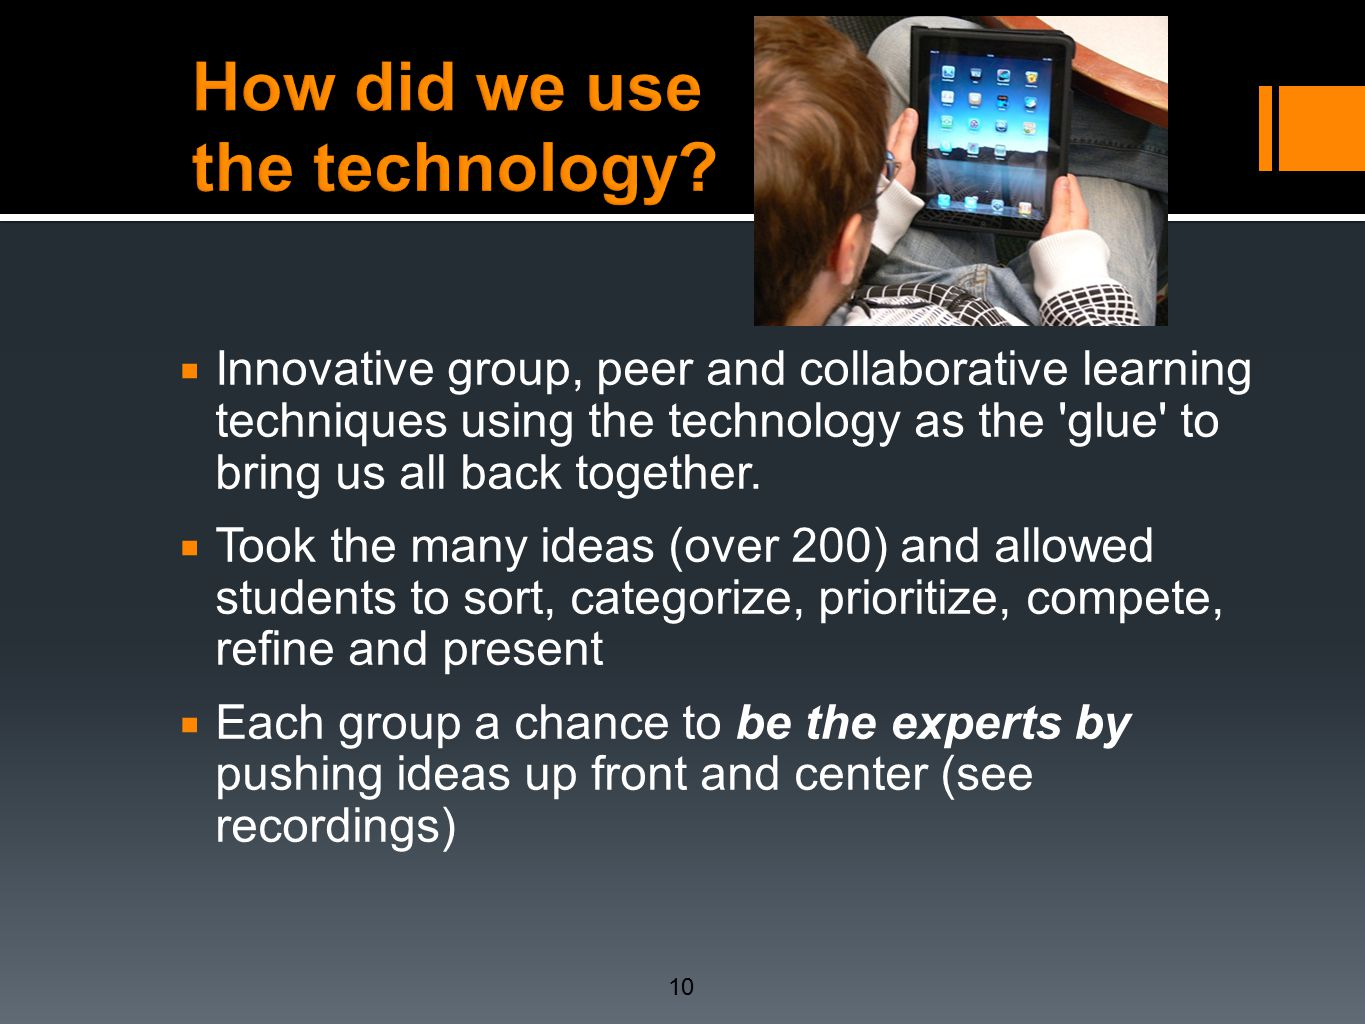  Innovative group, peer and collaborative learning techniques using the technology as the glue to bring us all back together.